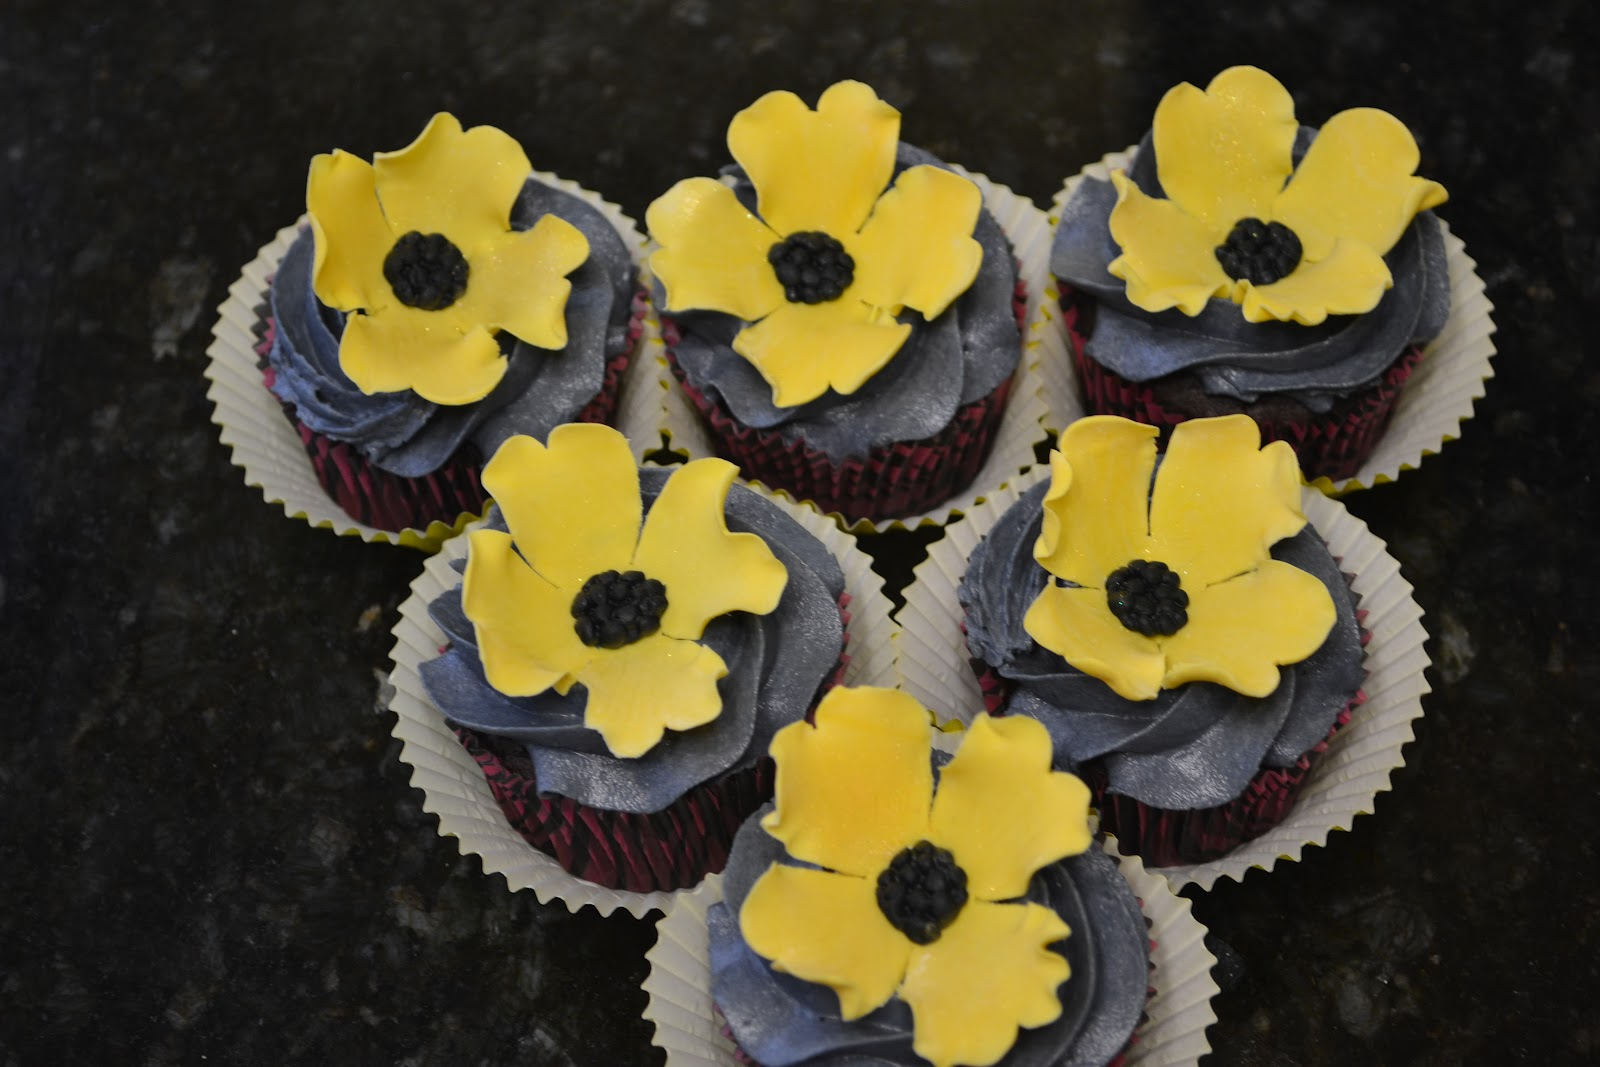 Cakes by lala yellow flower birthday cupcakes yellow flower birthday cupcakes mightylinksfo